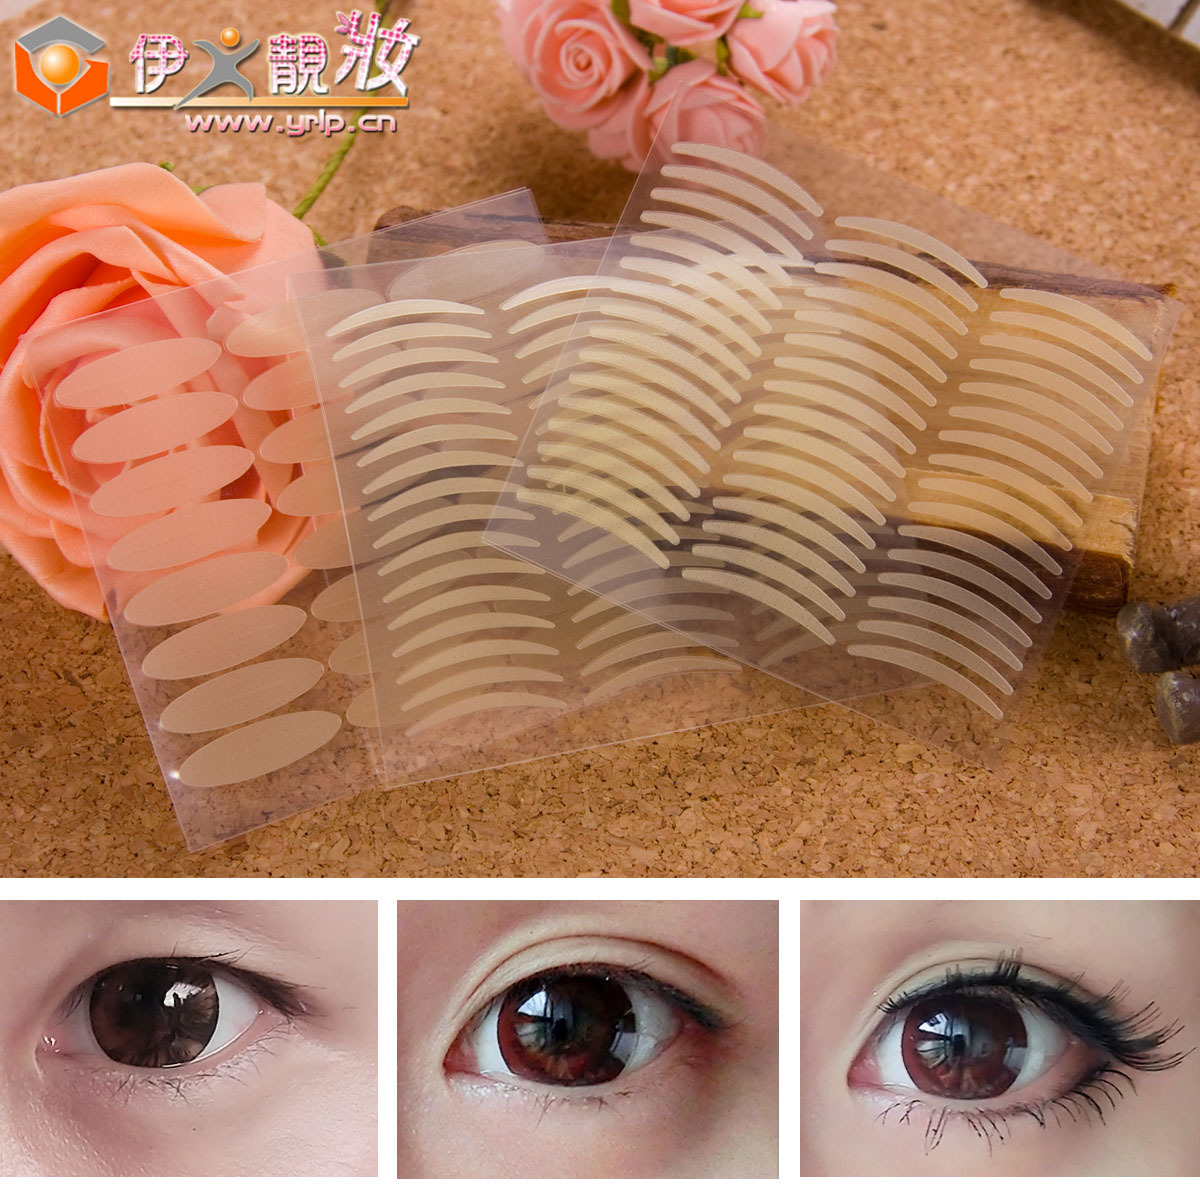 408 72 incarcerators natural invisible reflective beautiful eyes glue double eyelid(China (Mainland))